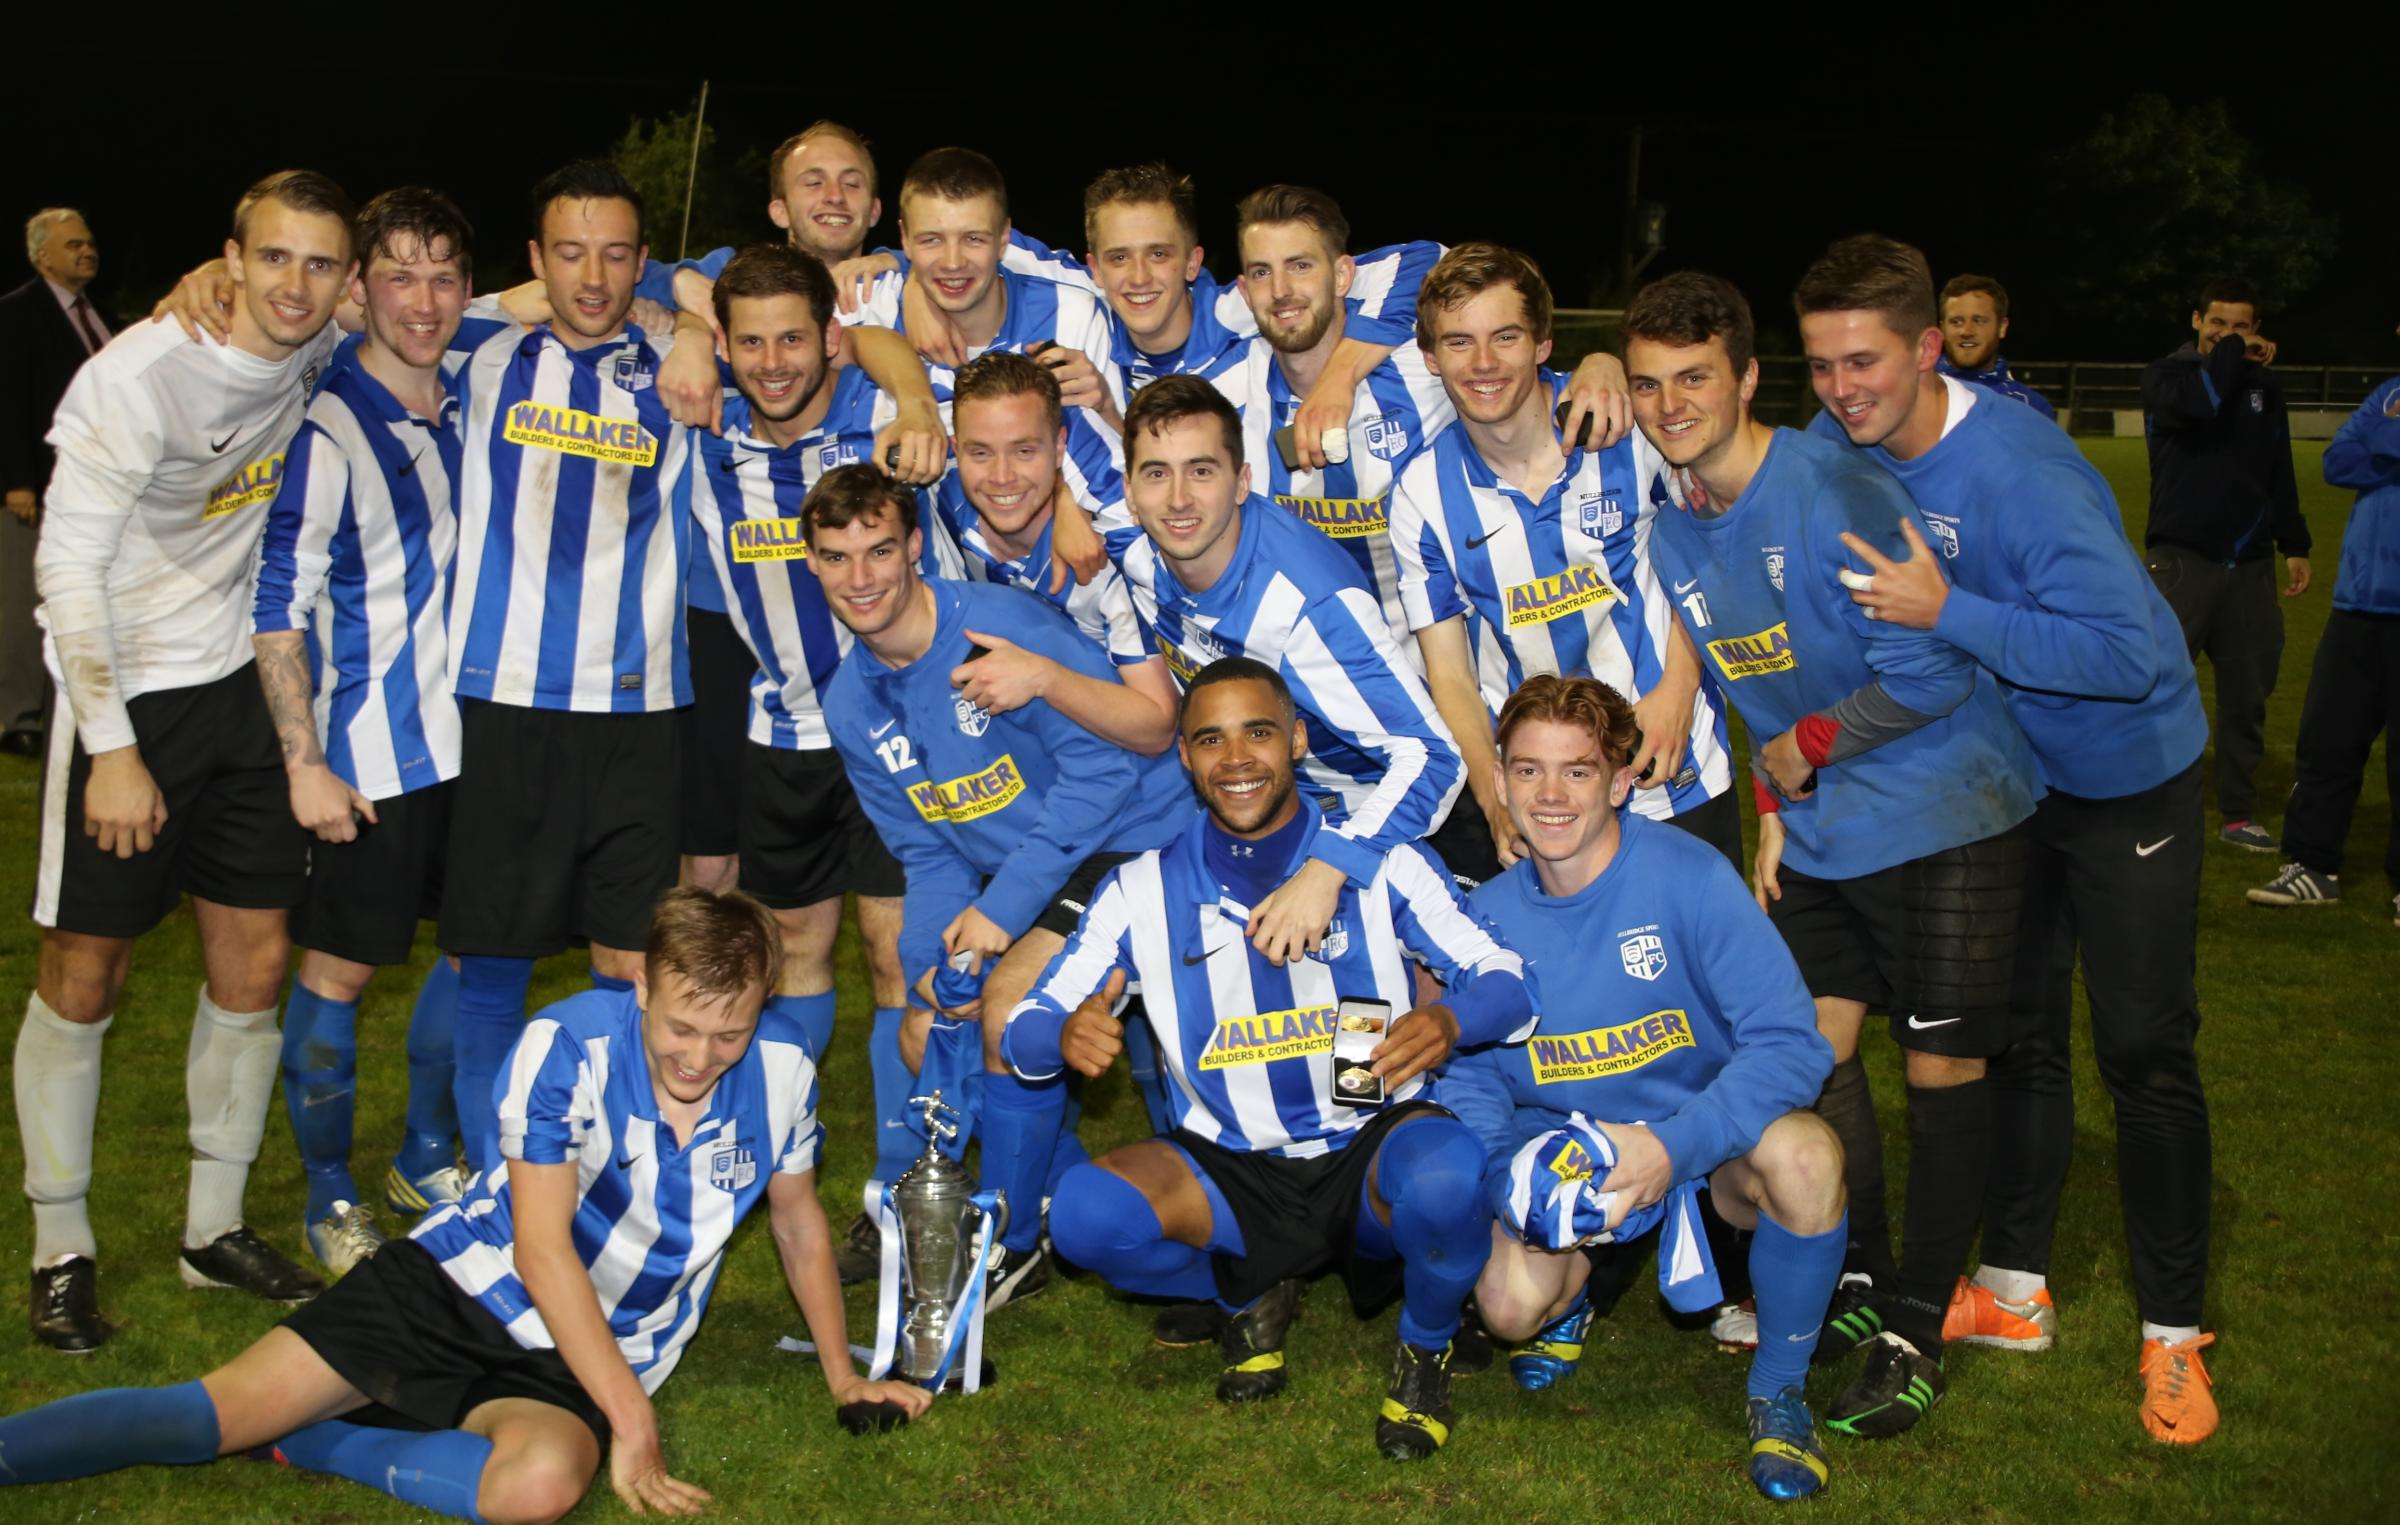 Champions – Hullbridge Sports with the Gordon Brasted Trophy